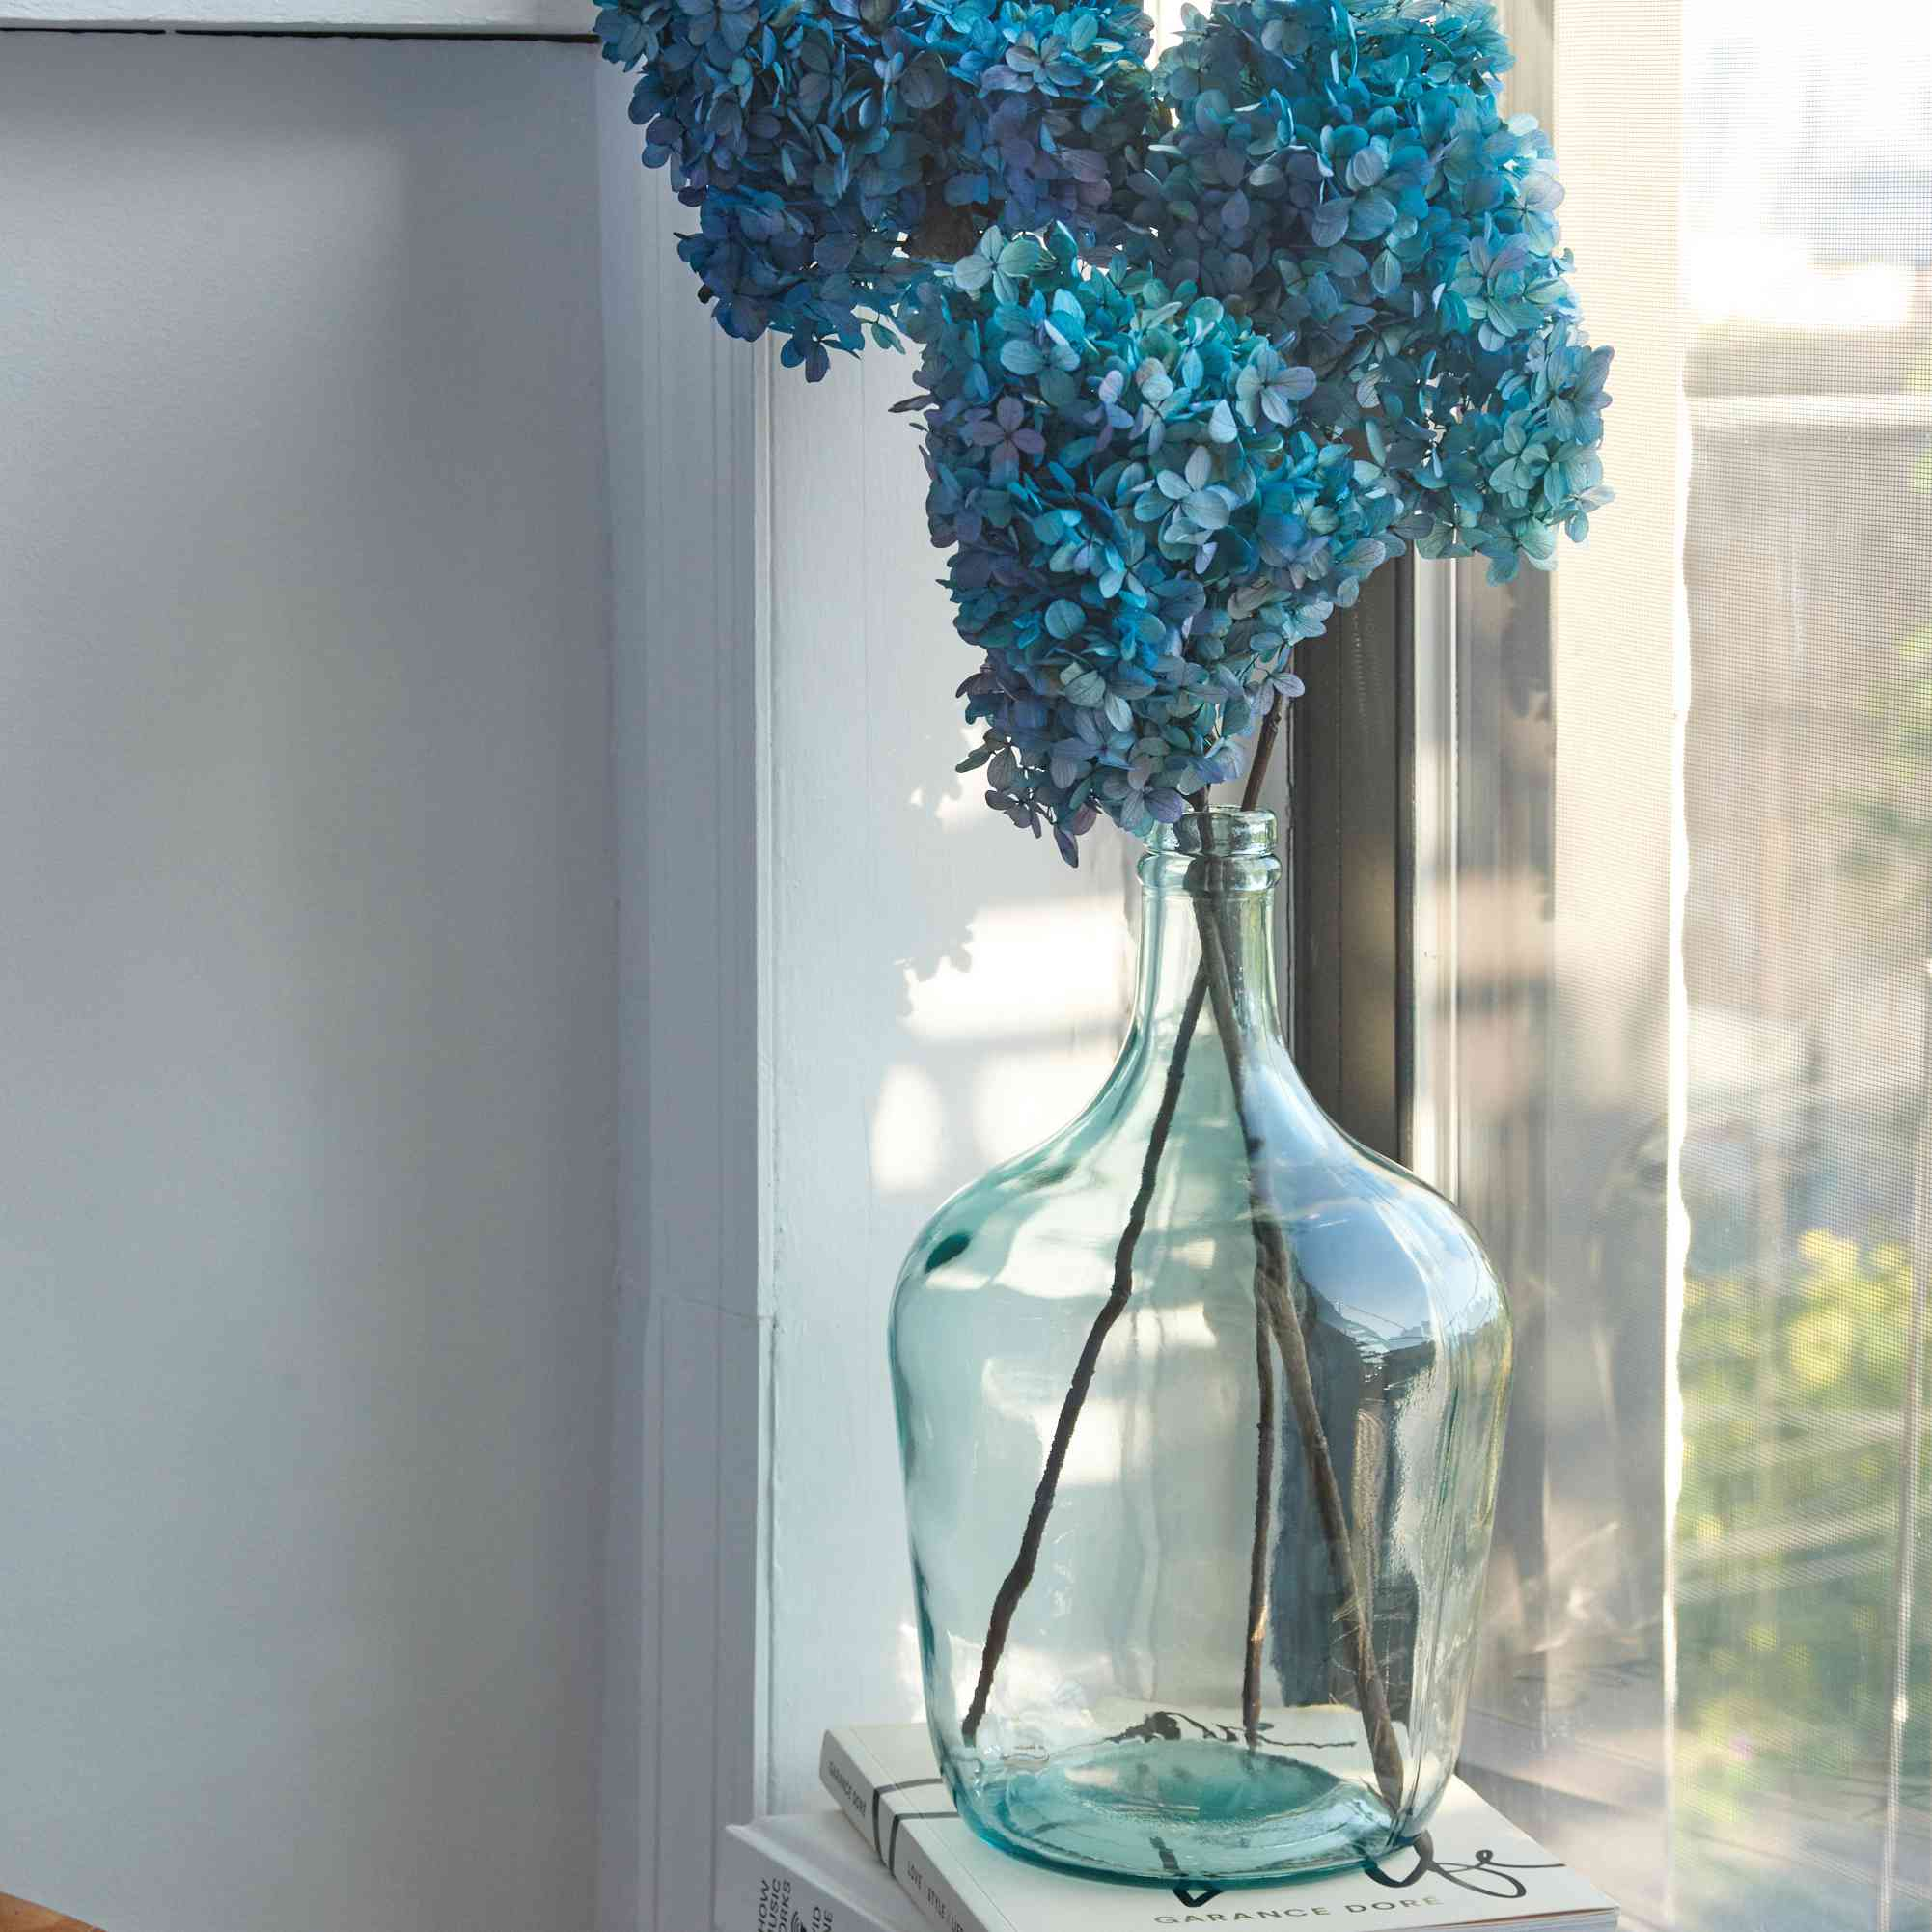 Dried hydrangea flowers being displayed in a vase